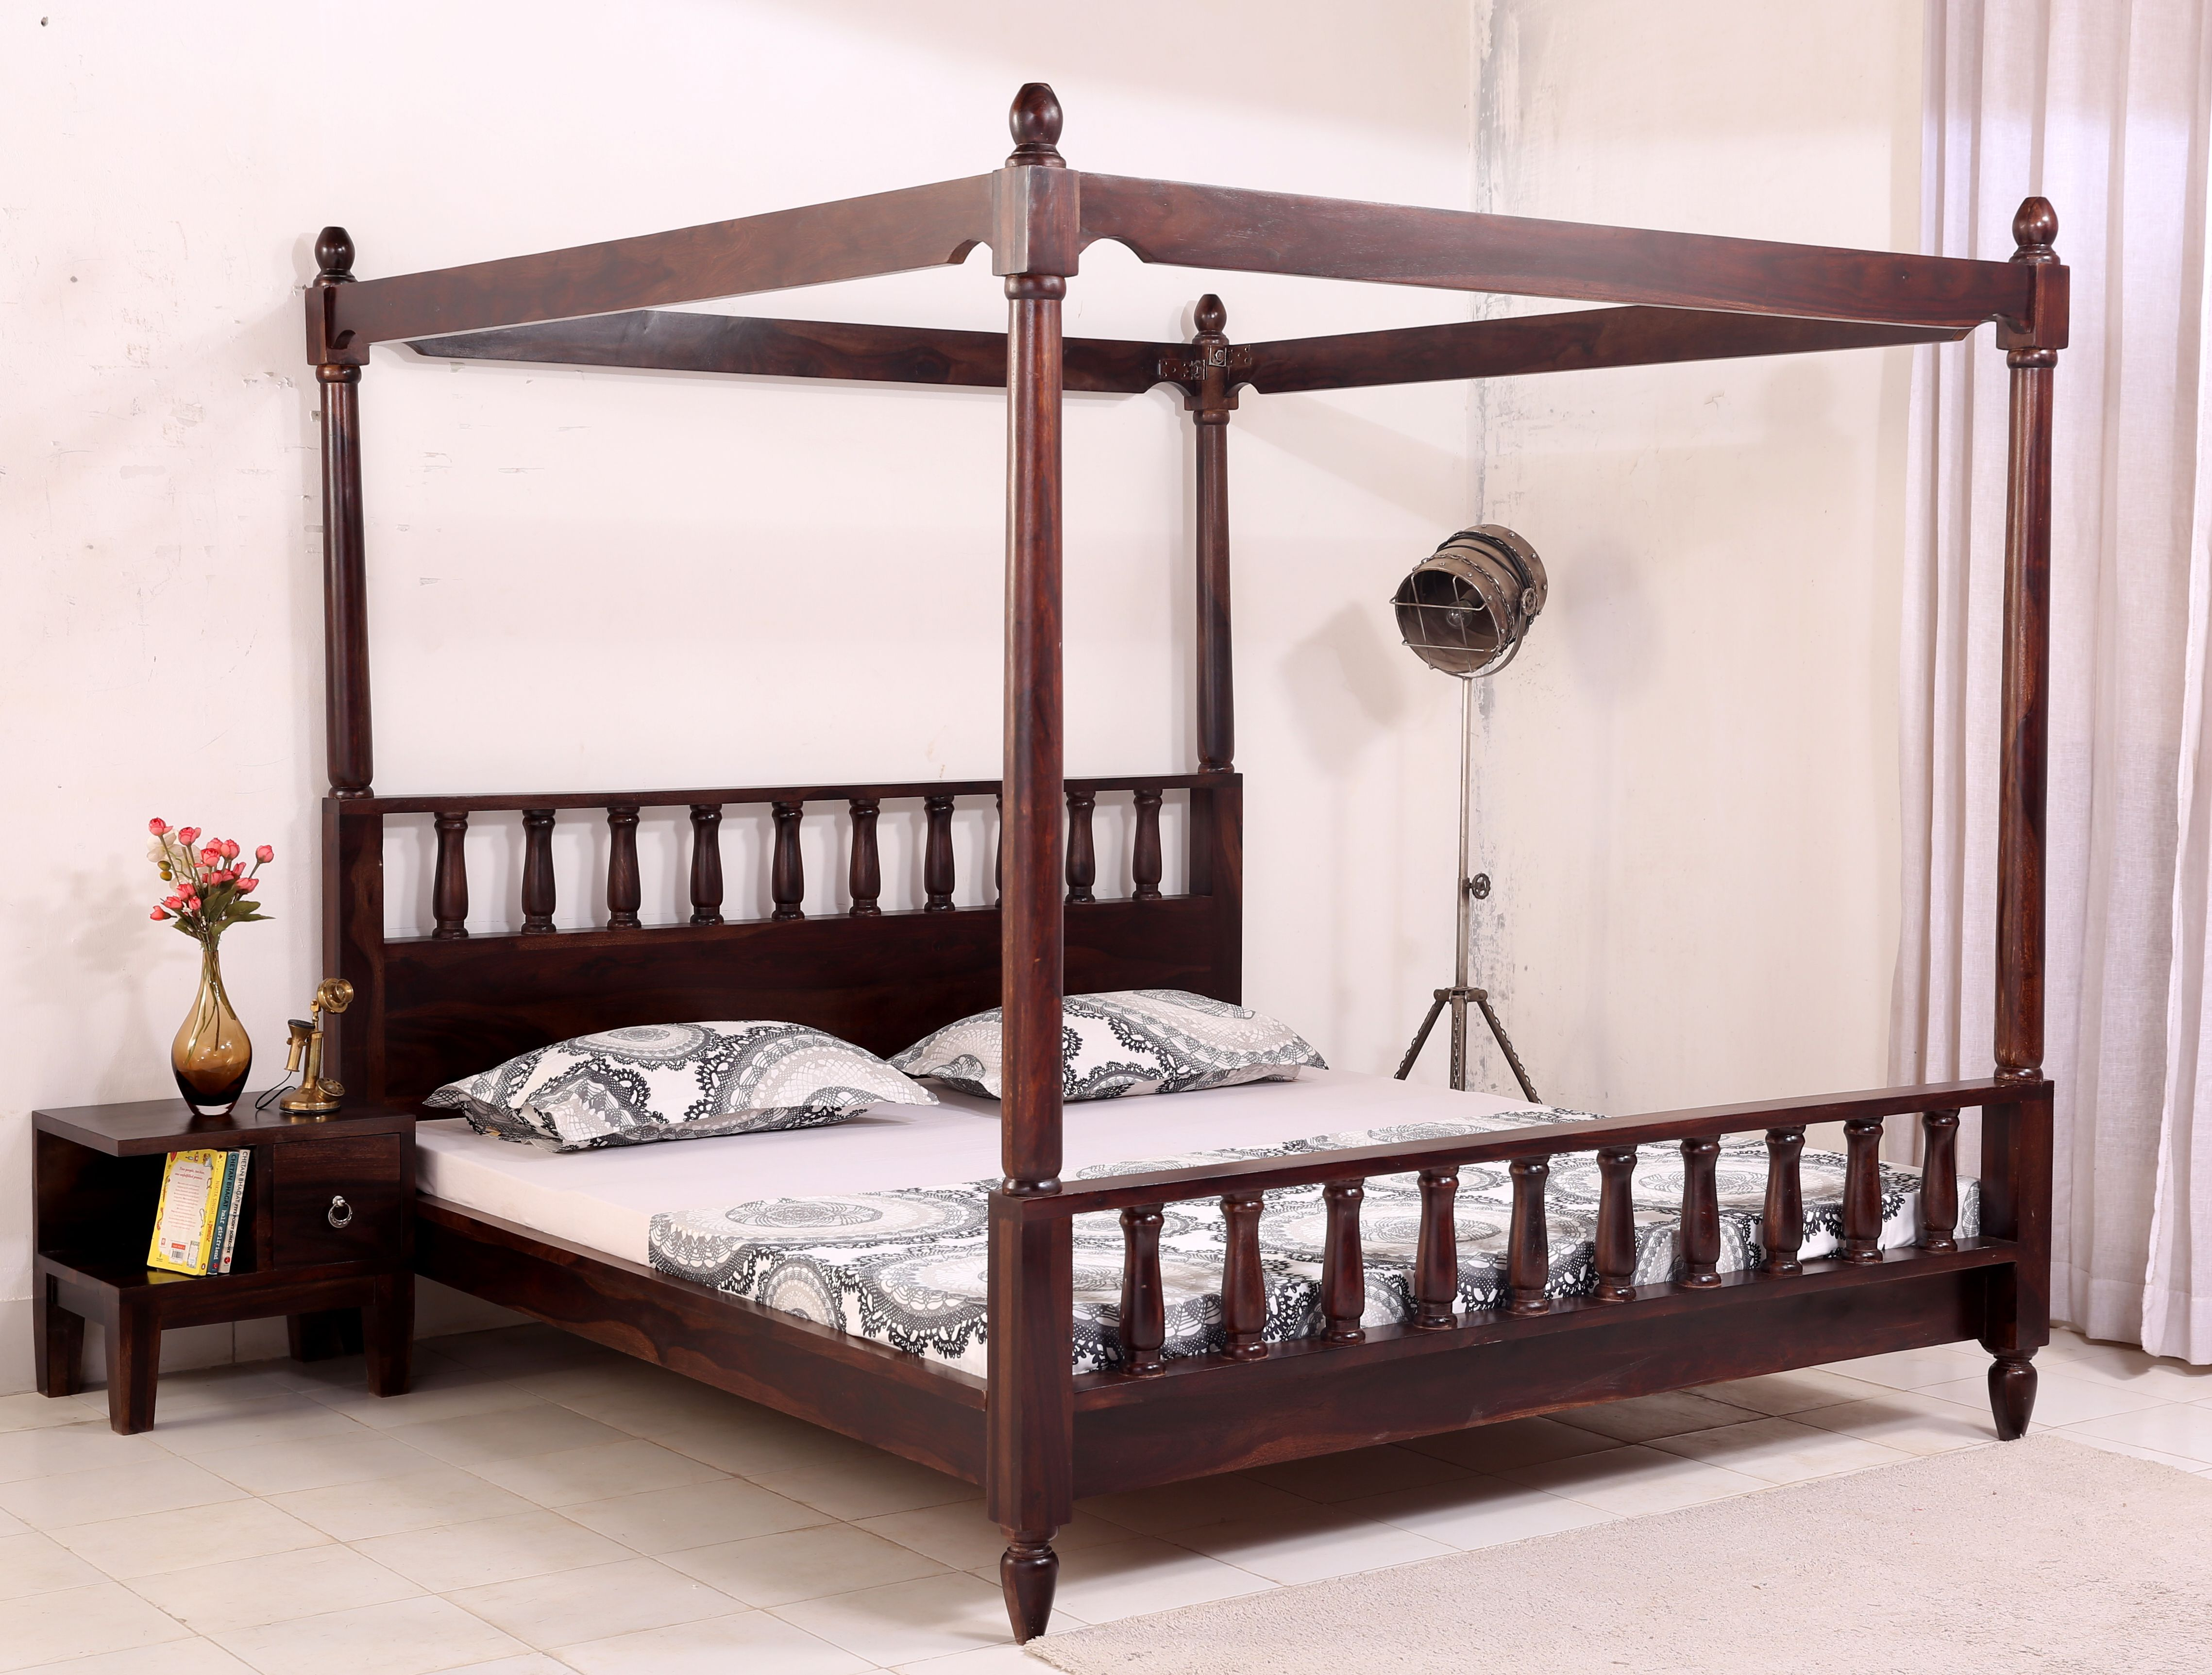 Buy Allure Poster Bed Without Storage King Size Mahogany Finish